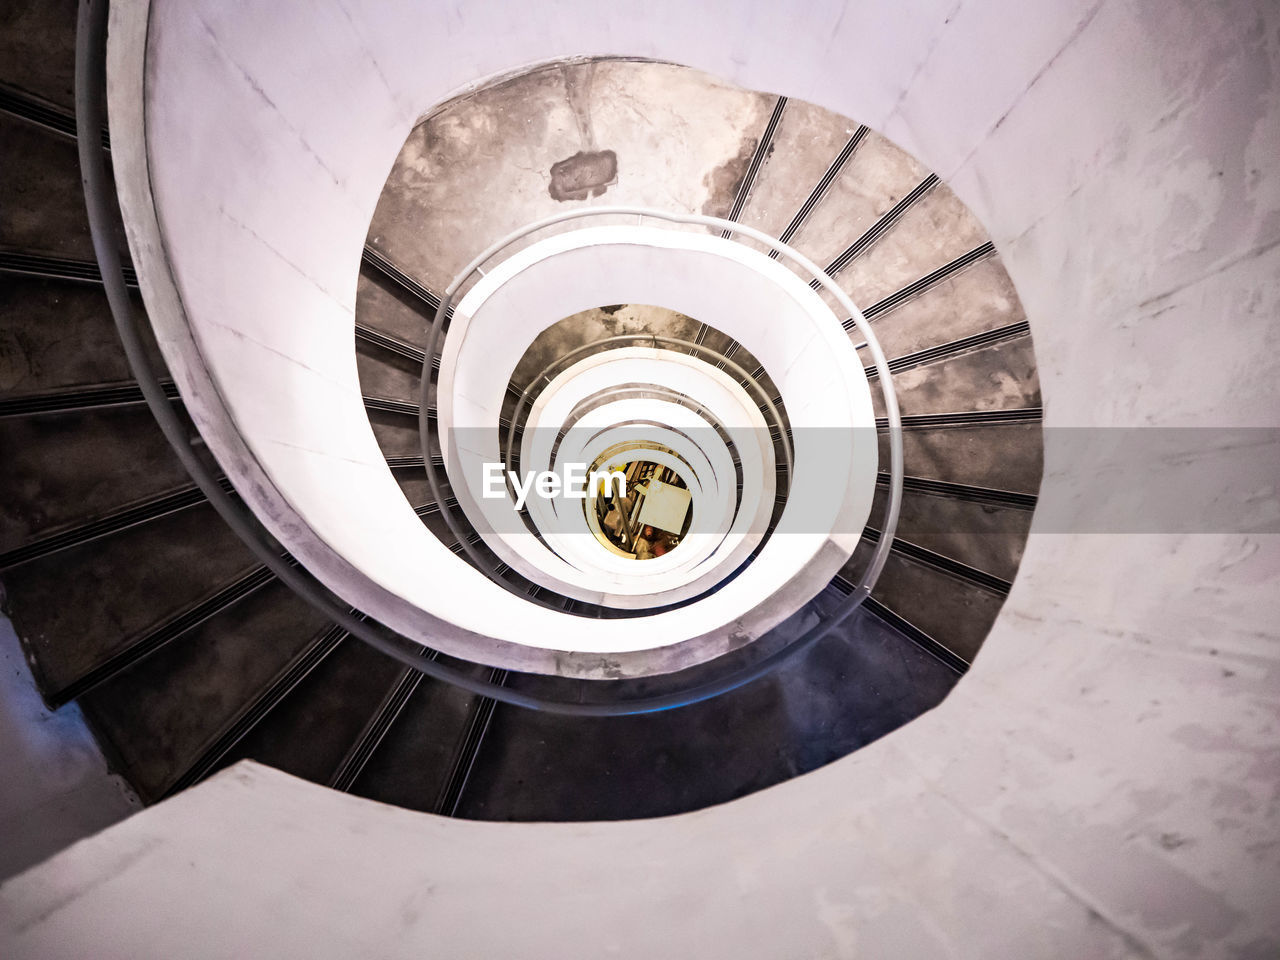 spiral, staircase, steps and staircases, architecture, built structure, spiral staircase, railing, indoors, high angle view, directly above, design, pattern, geometric shape, shape, building, diminishing perspective, no people, circle, directly below